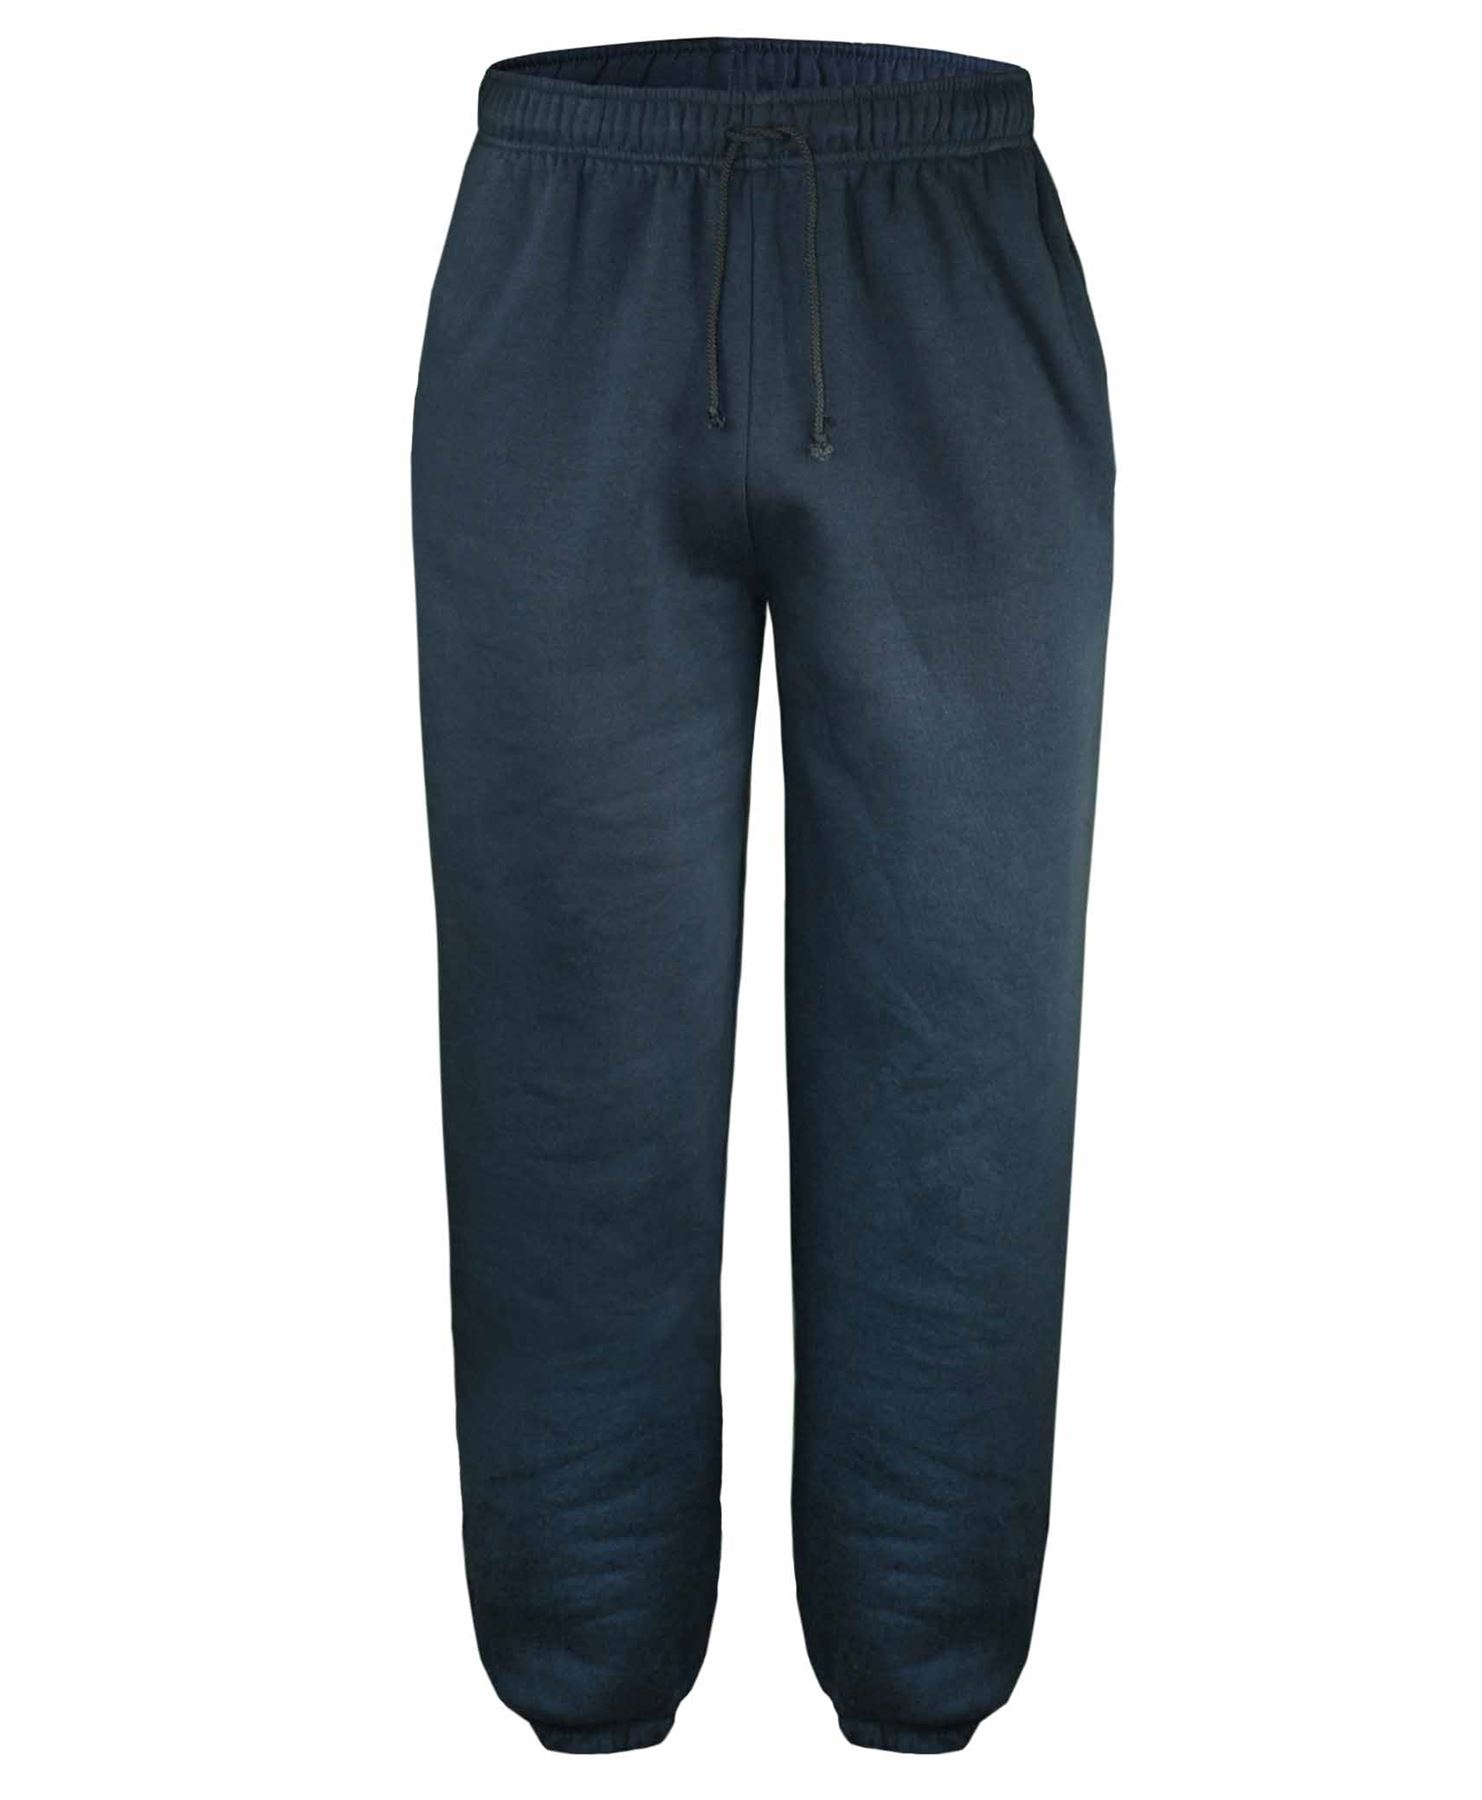 Fleece Pajama Pants for Men. Fleece Pajama Bottoms Sale! Slipping into a fresh pair of men's fleece pajama pants can help keep you comfy and relaxed no matter what it's like outside.